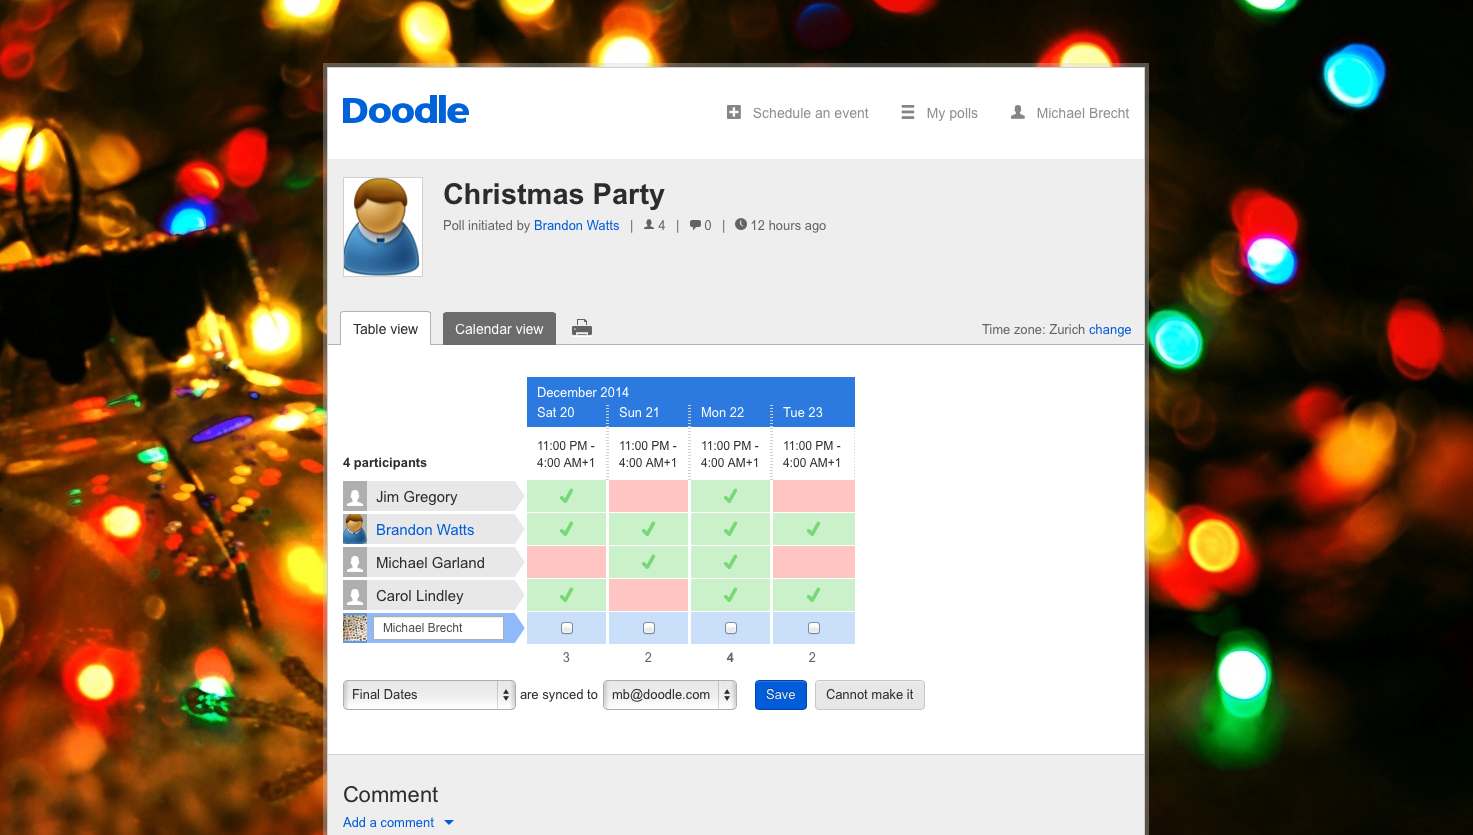 Plan your Christmas party with Doodle